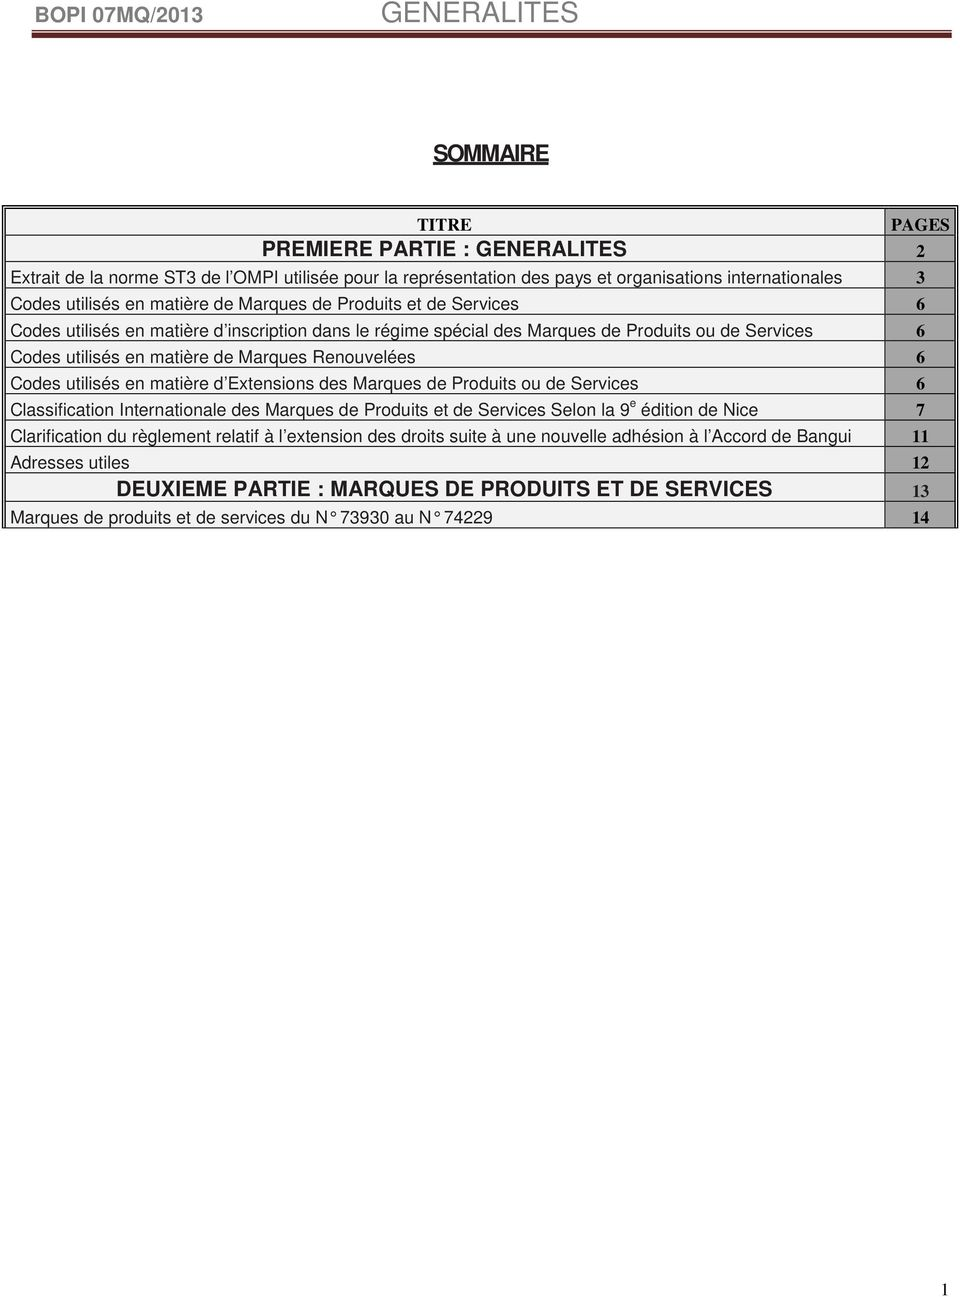 Renouvelées 6 Codes utilisés en matière d Extensions des Marques de Produits ou de Services 6 Classification Internationale des Marques de Produits et de Services Selon la 9 e édition de Nice 7